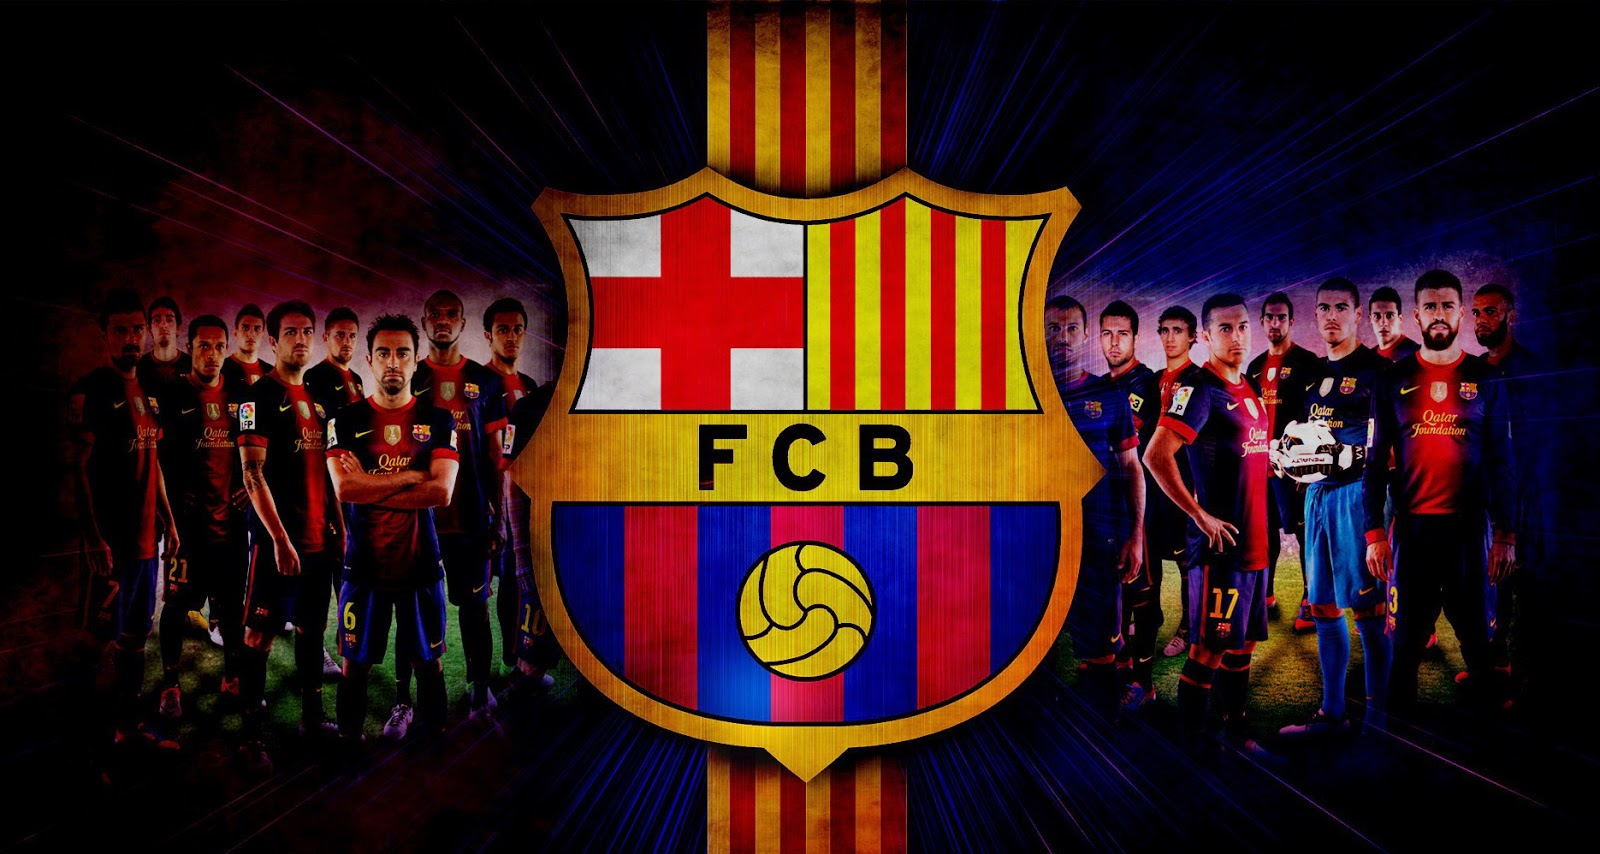 Fc Barcelona Player Brand New Hd Wallpaper 2014 World Fresh Hd Wallapers